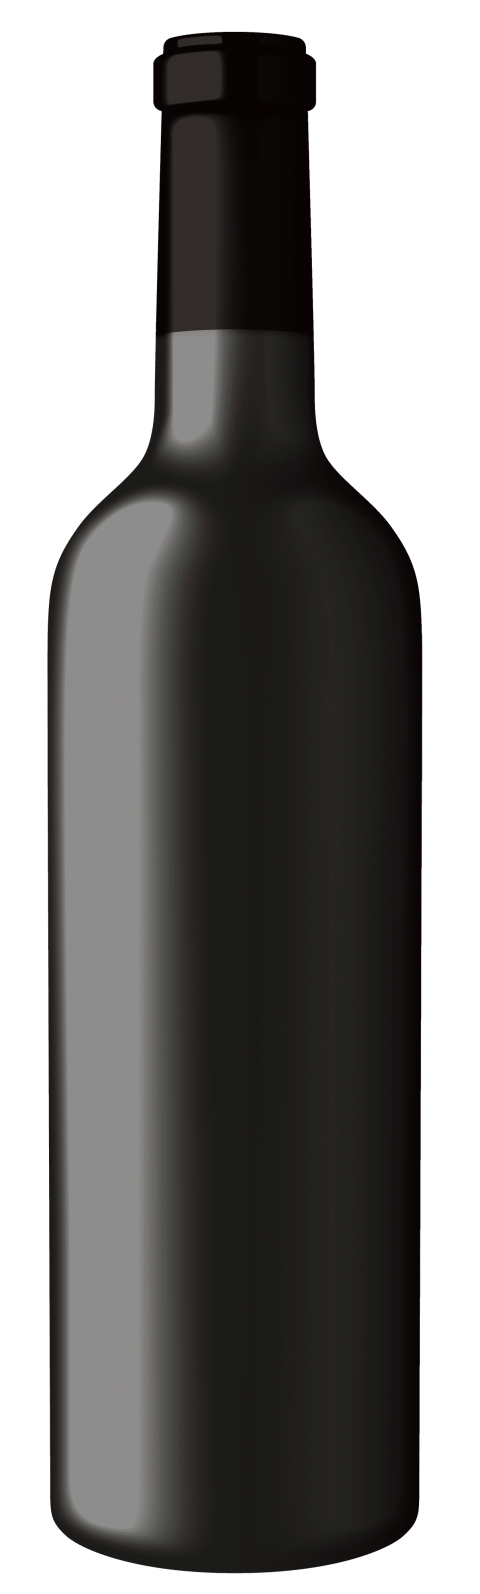 Wine bottle silhouette png. Black free images toppng